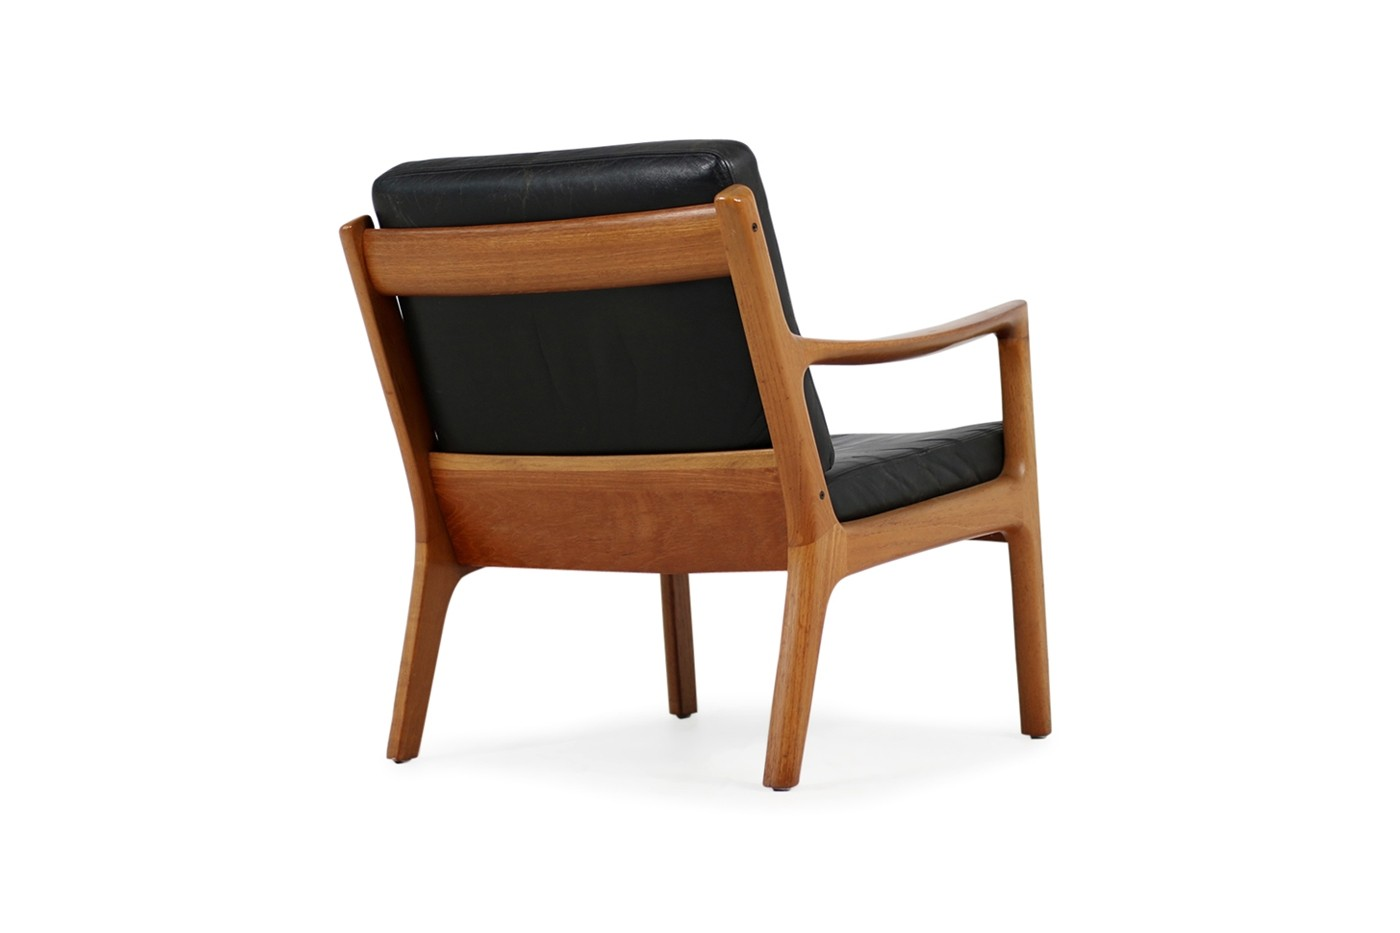 Chair Sessel 1960s Danish Modern Ole Wanscher Easy Chair Teak Black Leather No 2